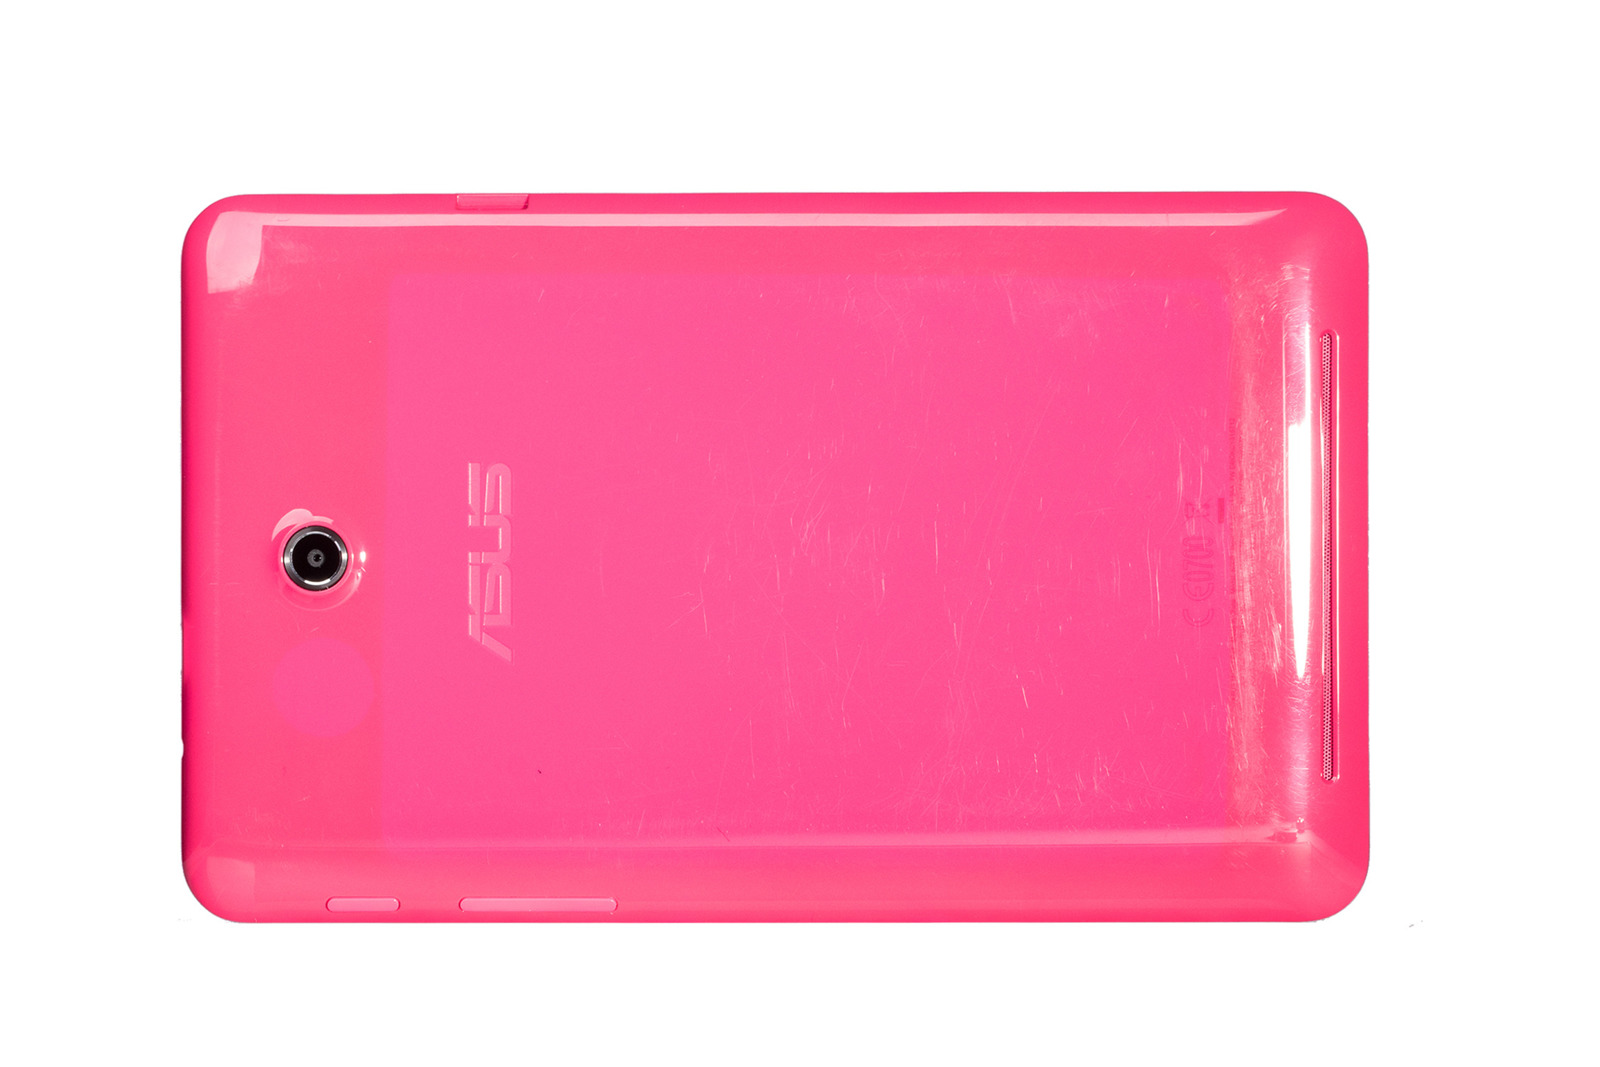 Tablet Asus MeMo Pad HD 7 16GB Pink Grade C